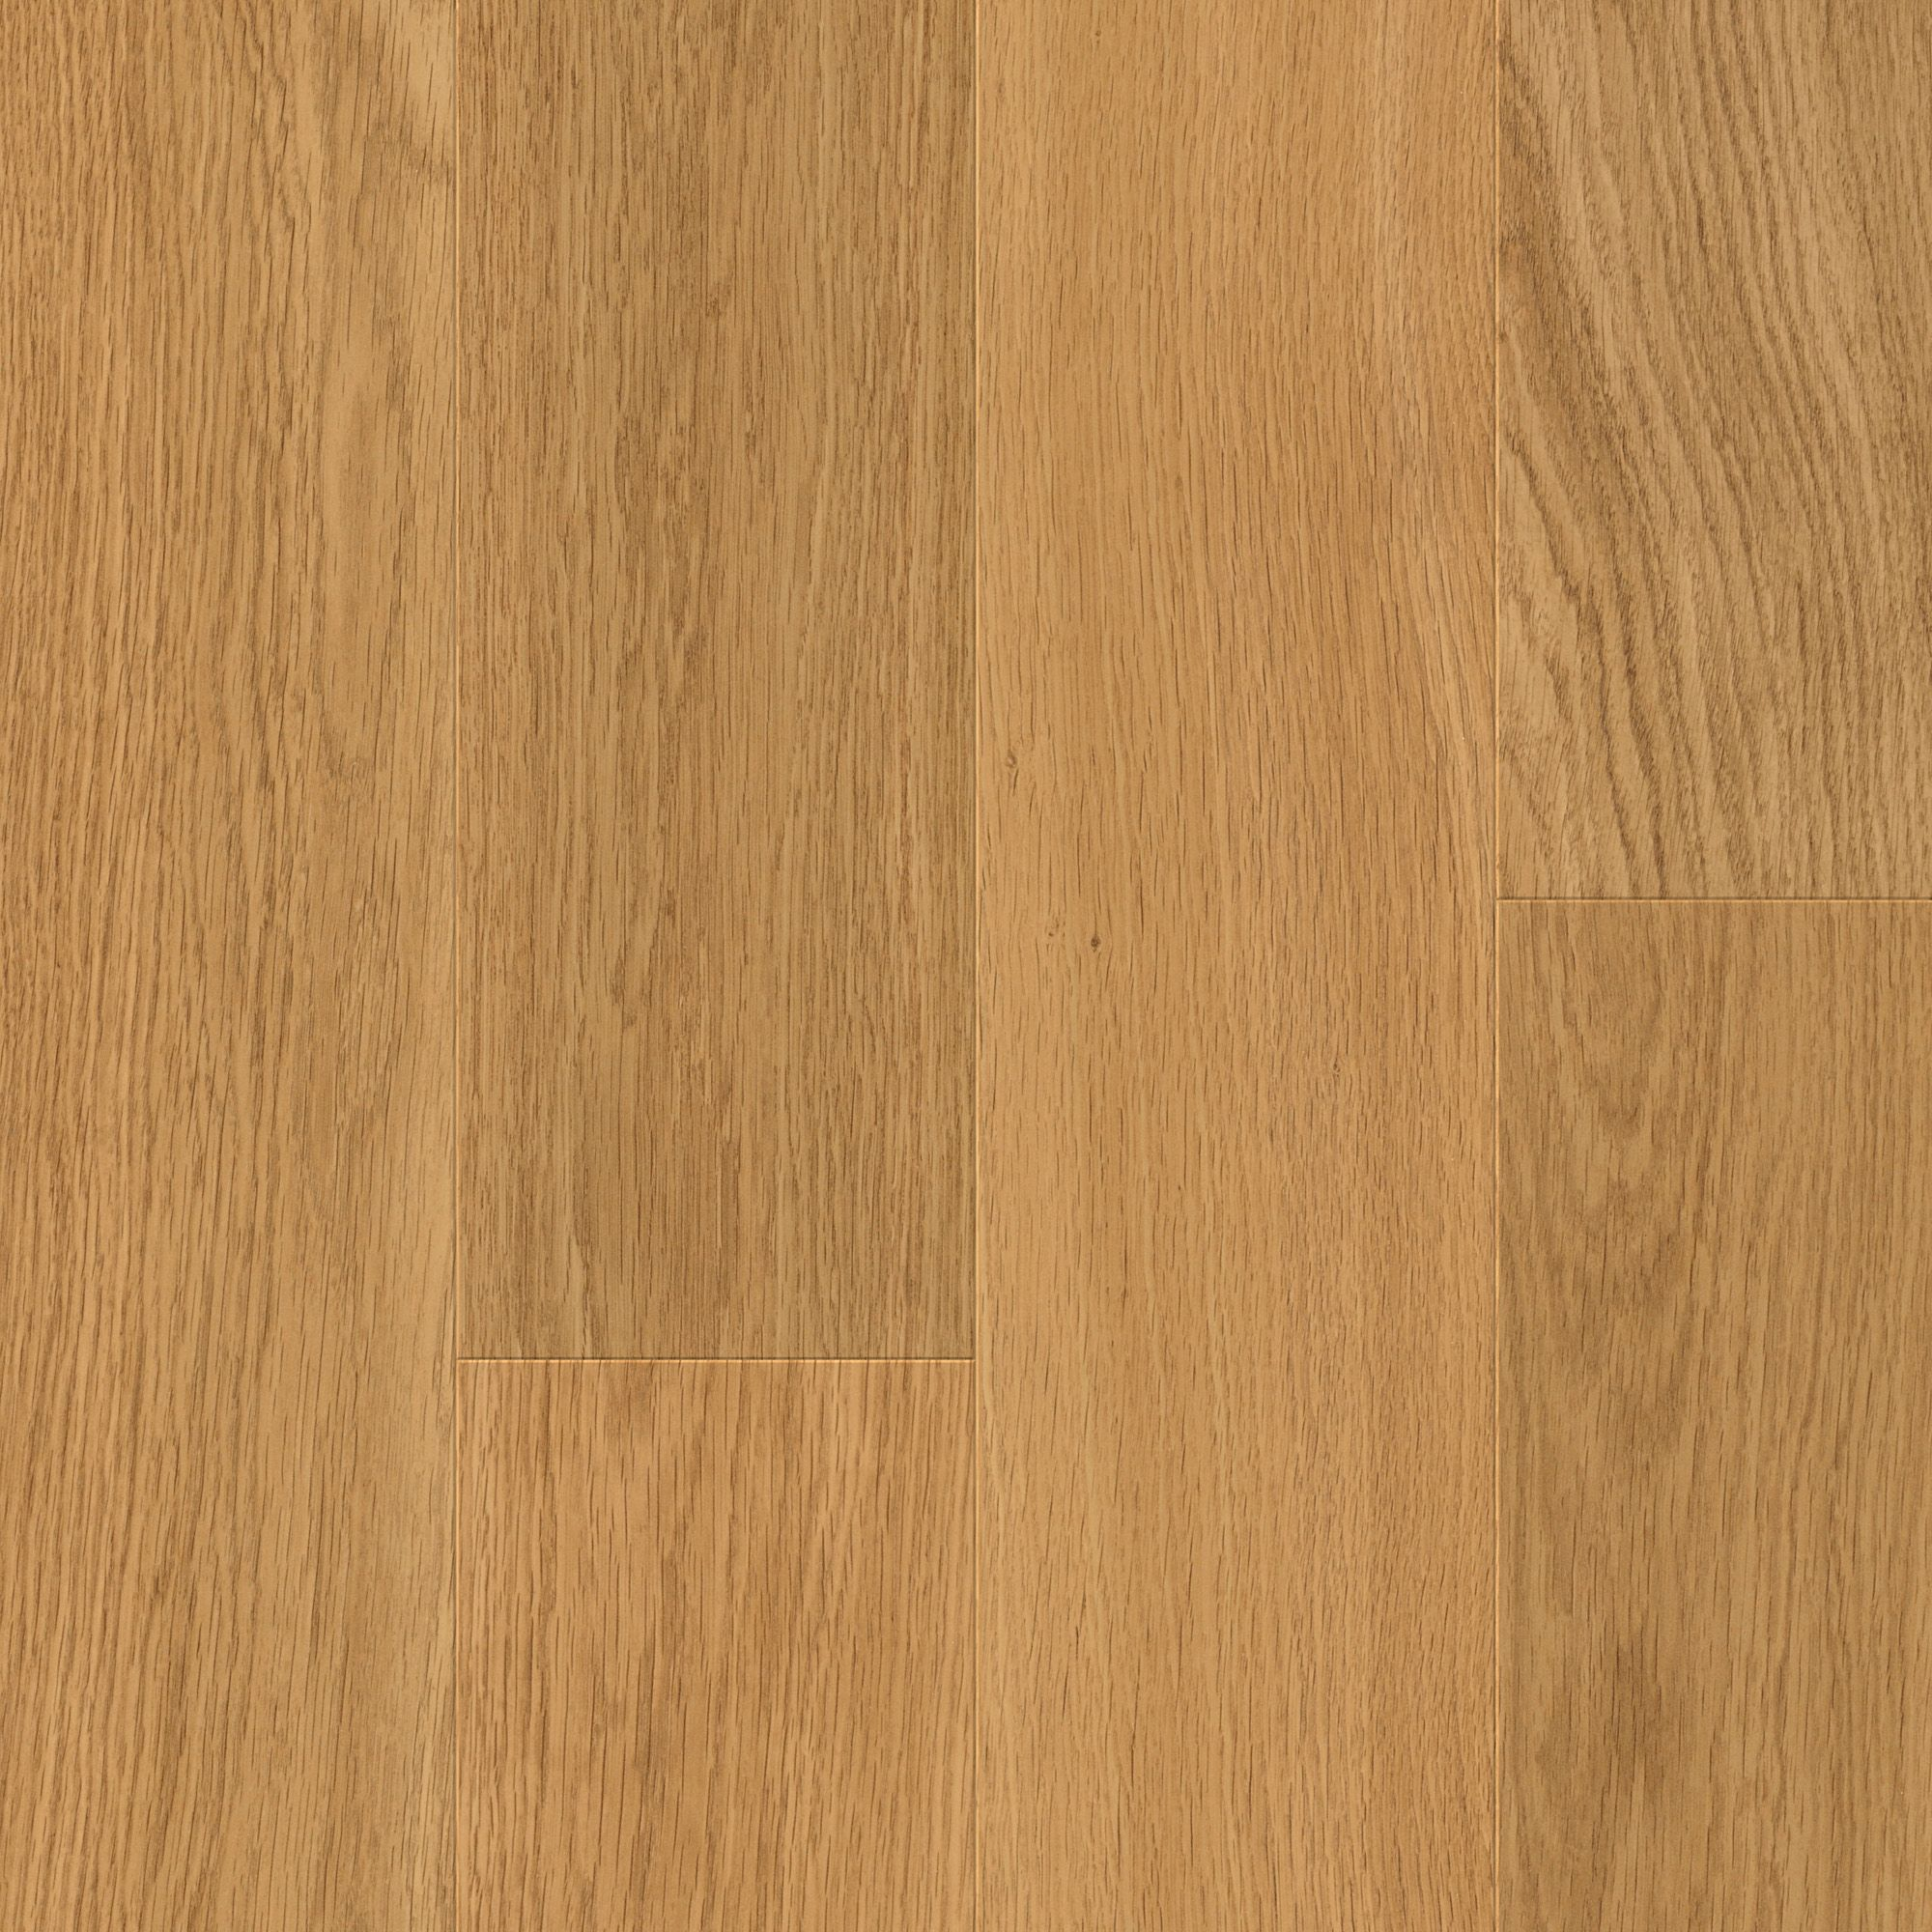 Andante Light Oak Effect Laminate Flooring Sample